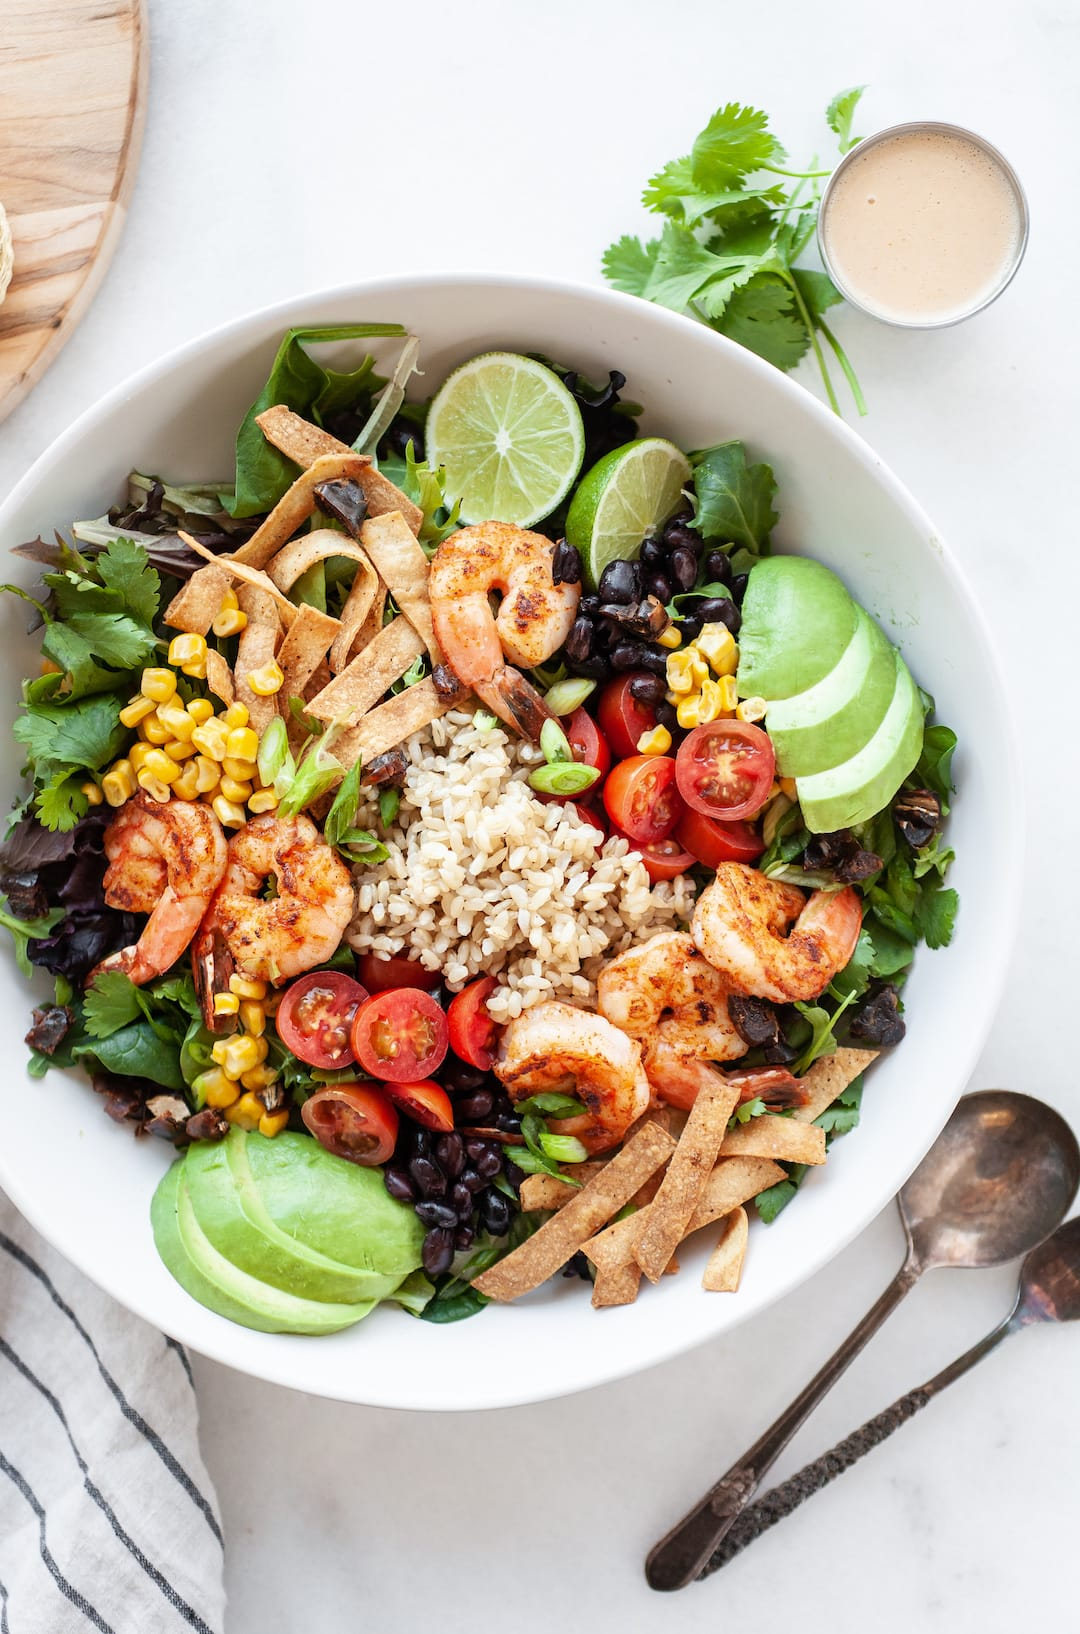 Bowl of Healthy Southwest Salad with colourful vegetables